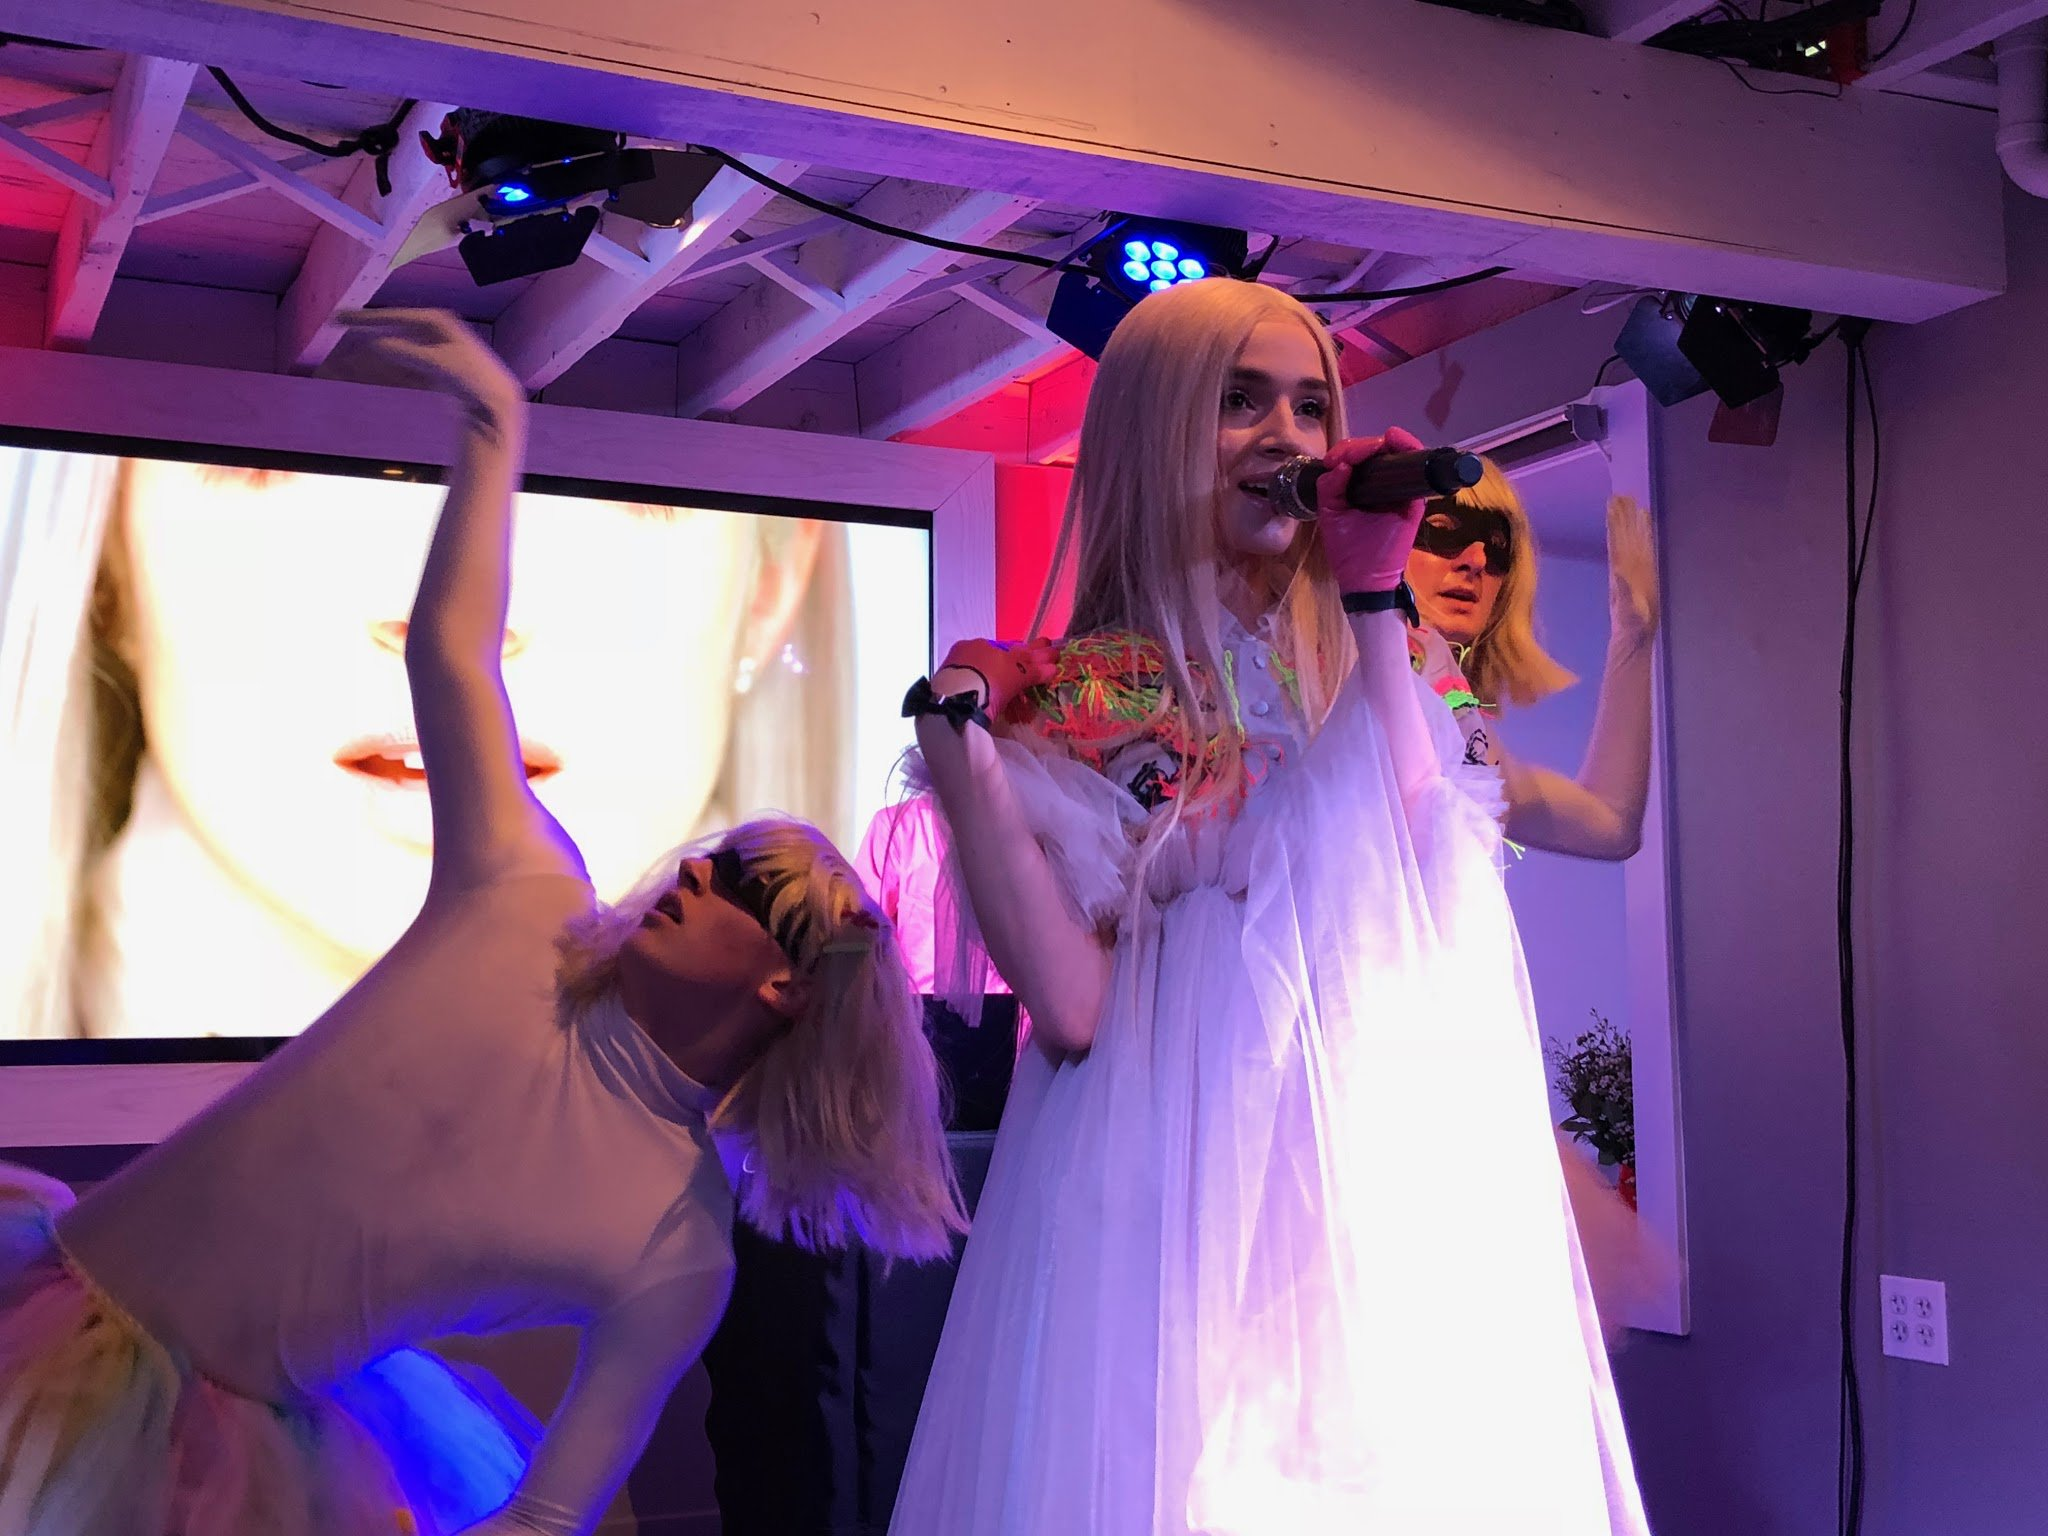 .@Poppy came to party at the YouTube House and didn't disappoint. #YouTubexSundance https://t.co/B4xj6RmVi9